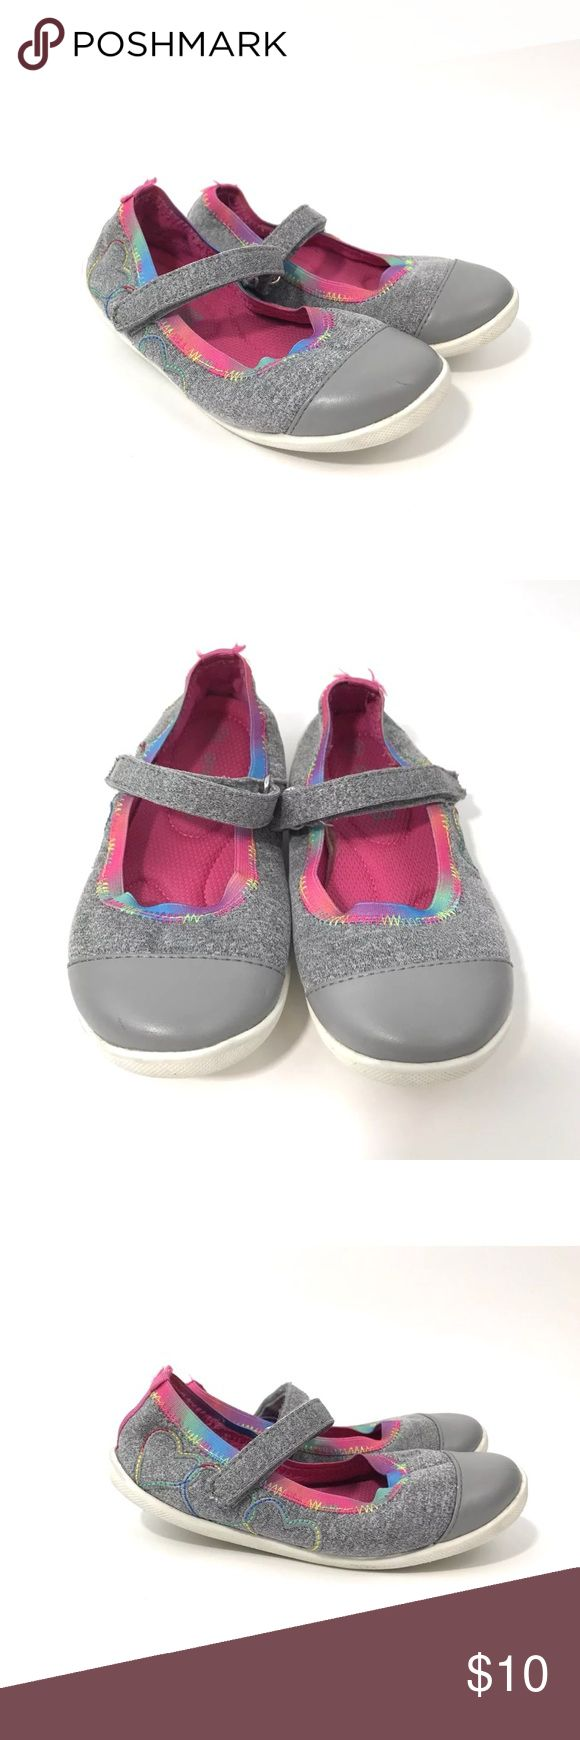 Smartfit Girl's Size 10 Grey Hearts Casual Shoes